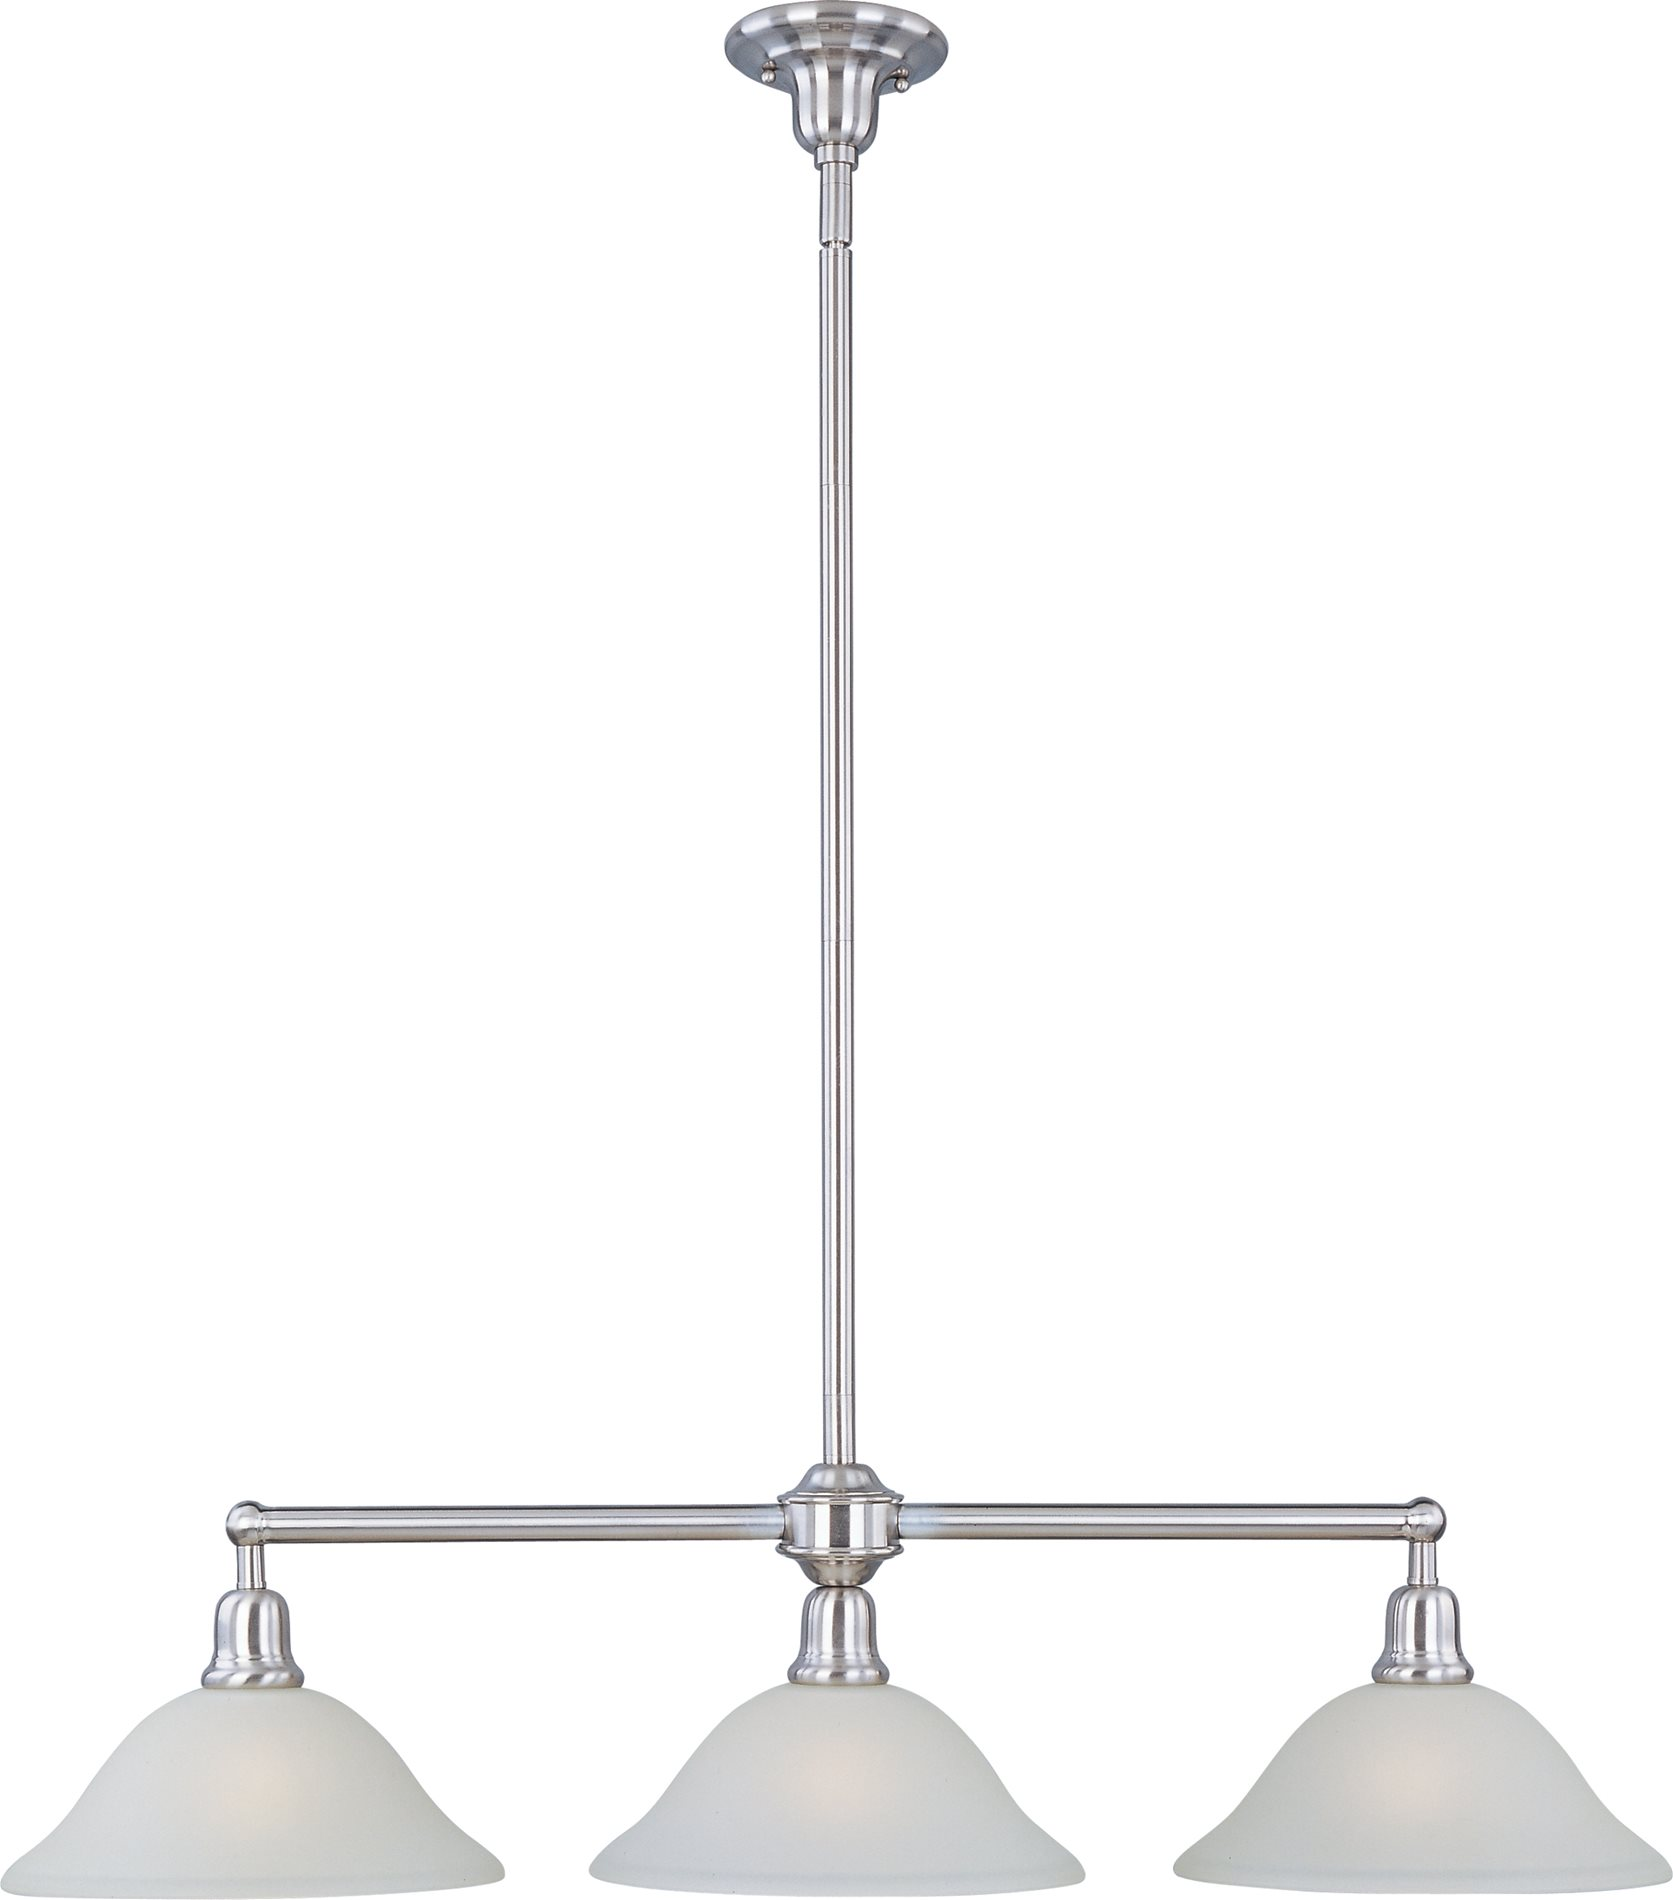 Maxim Lighting 11093SVSN Bel Air Transitional Kitchen